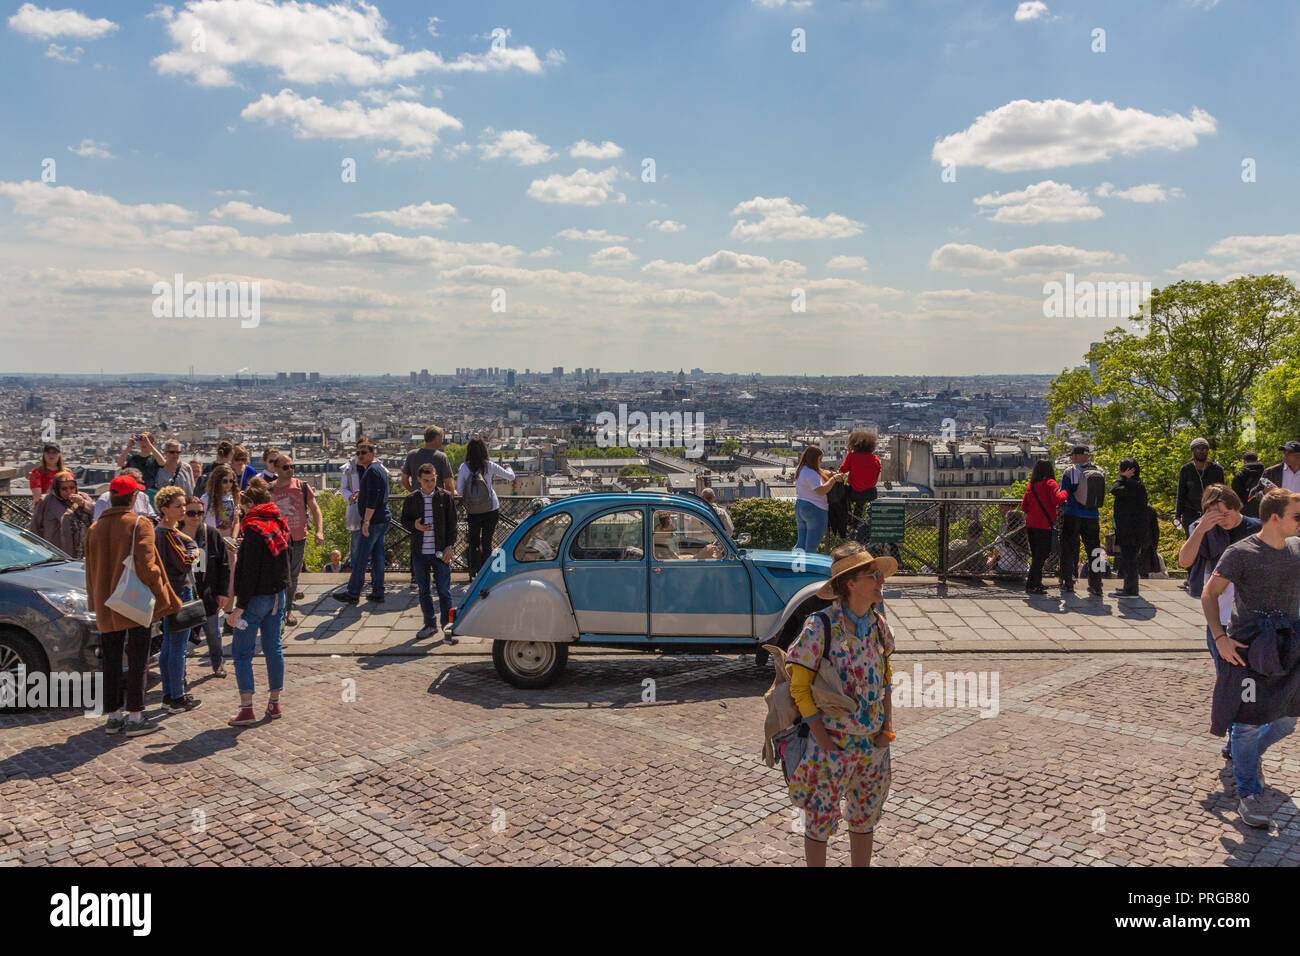 A great view of the City of Paris, Montmartre - Stock Image